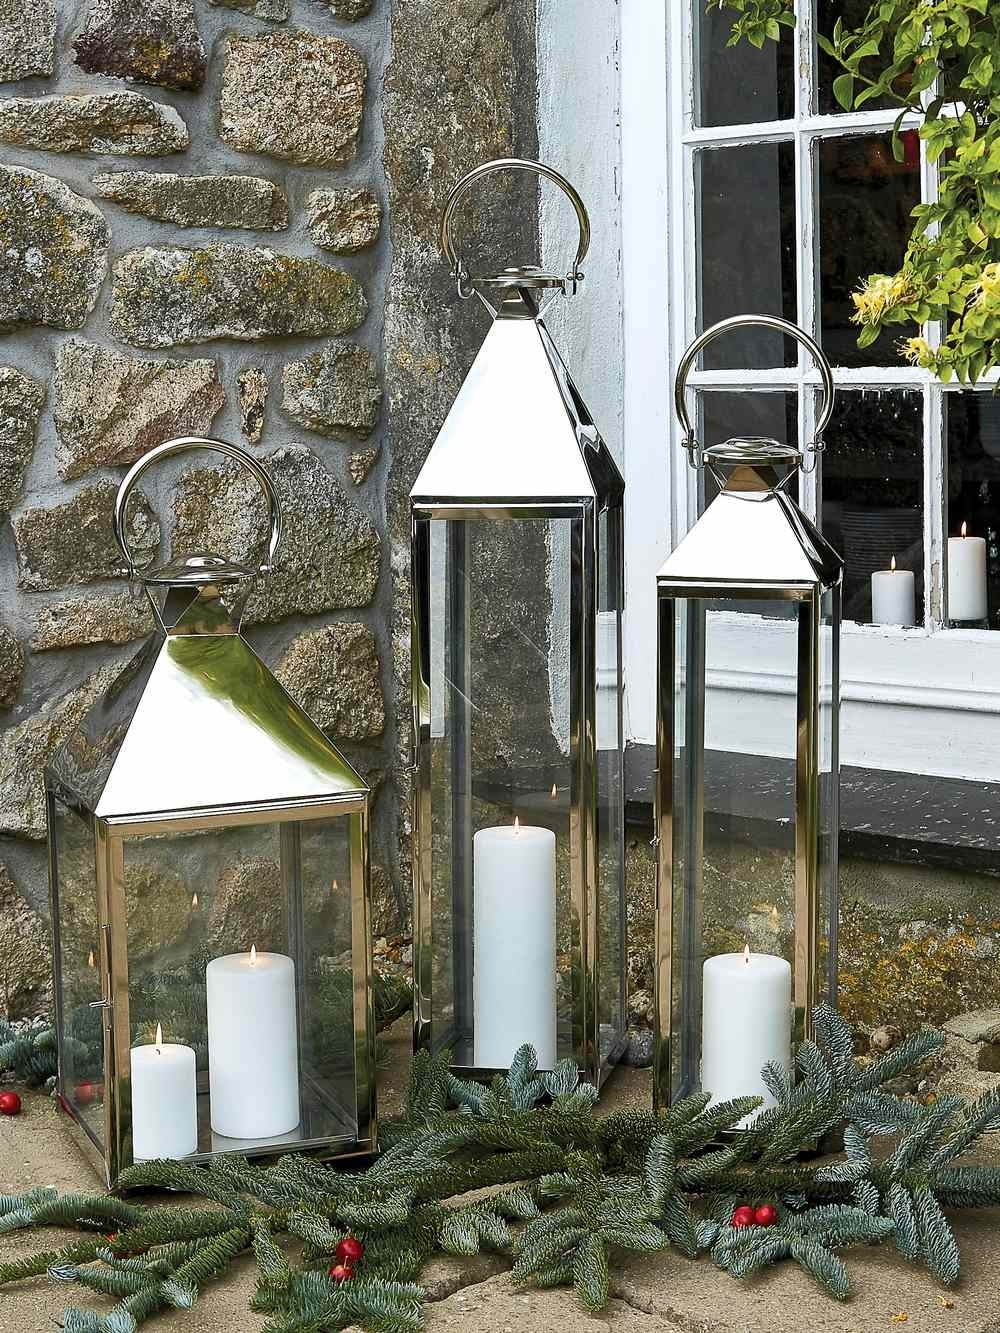 Big Stainless Steel Lanterns | Large Indoor Candle Lanterns Intended For Outdoor Oversized Lanterns (View 6 of 20)